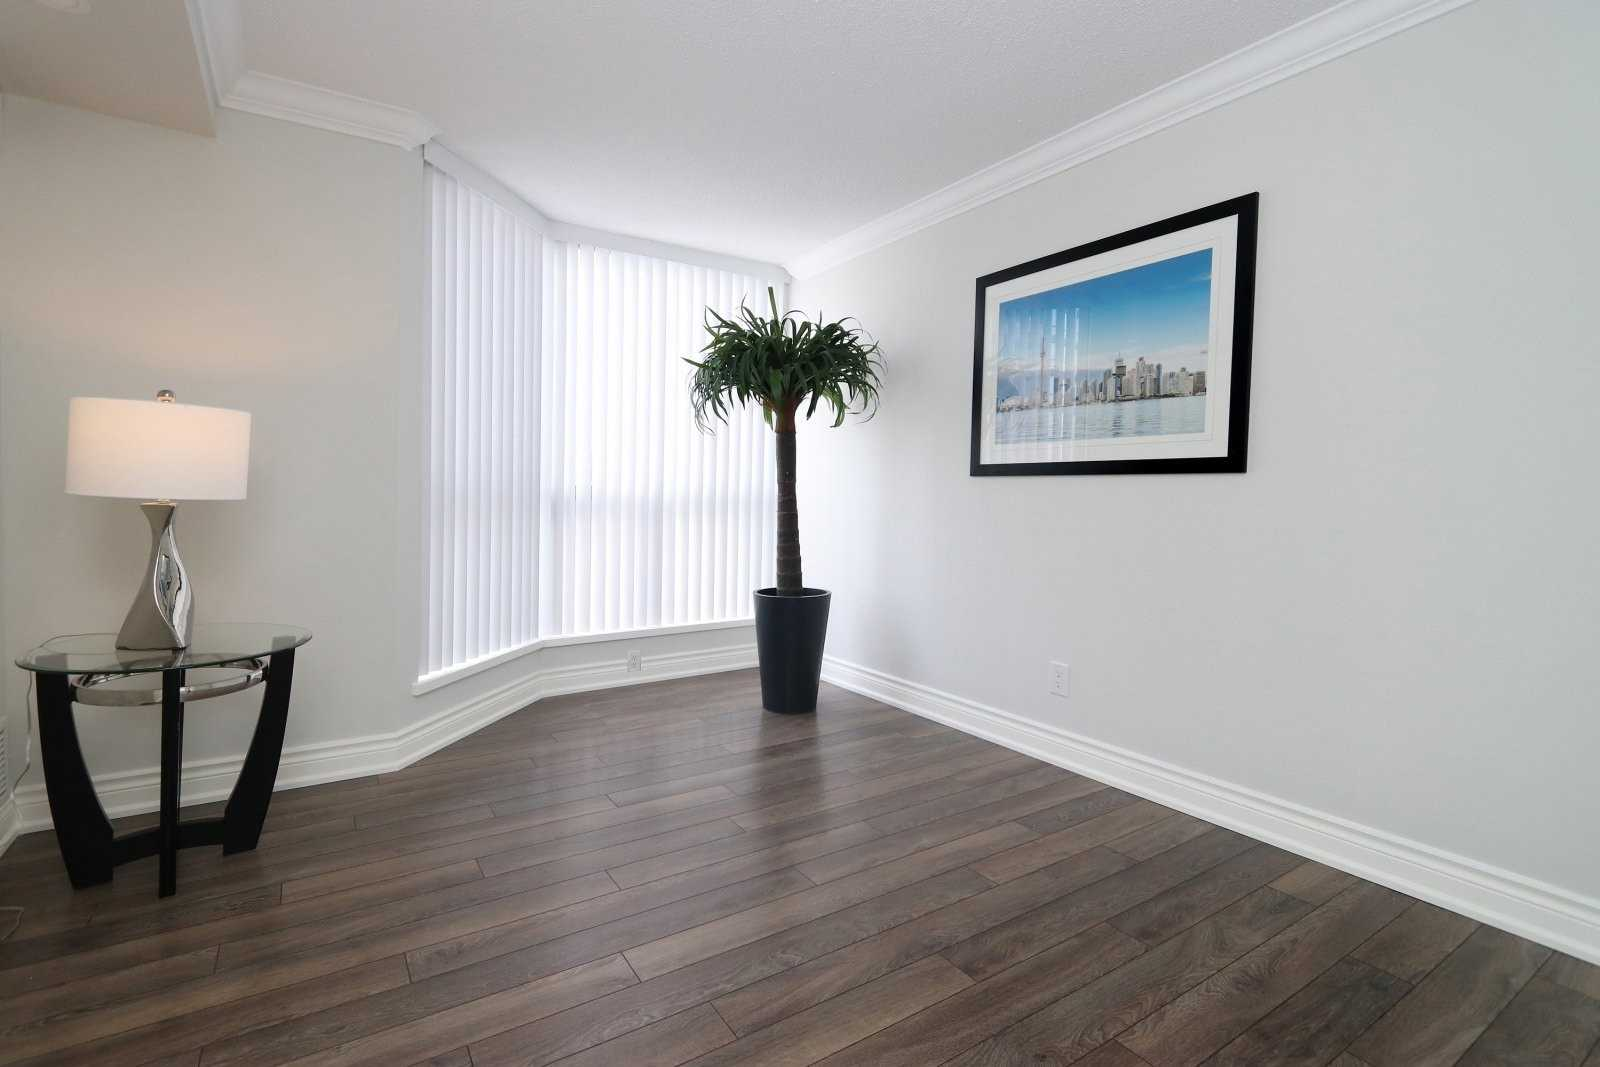 #601 - 1155 Bough Beeches Blvd, Mississauga W4665779